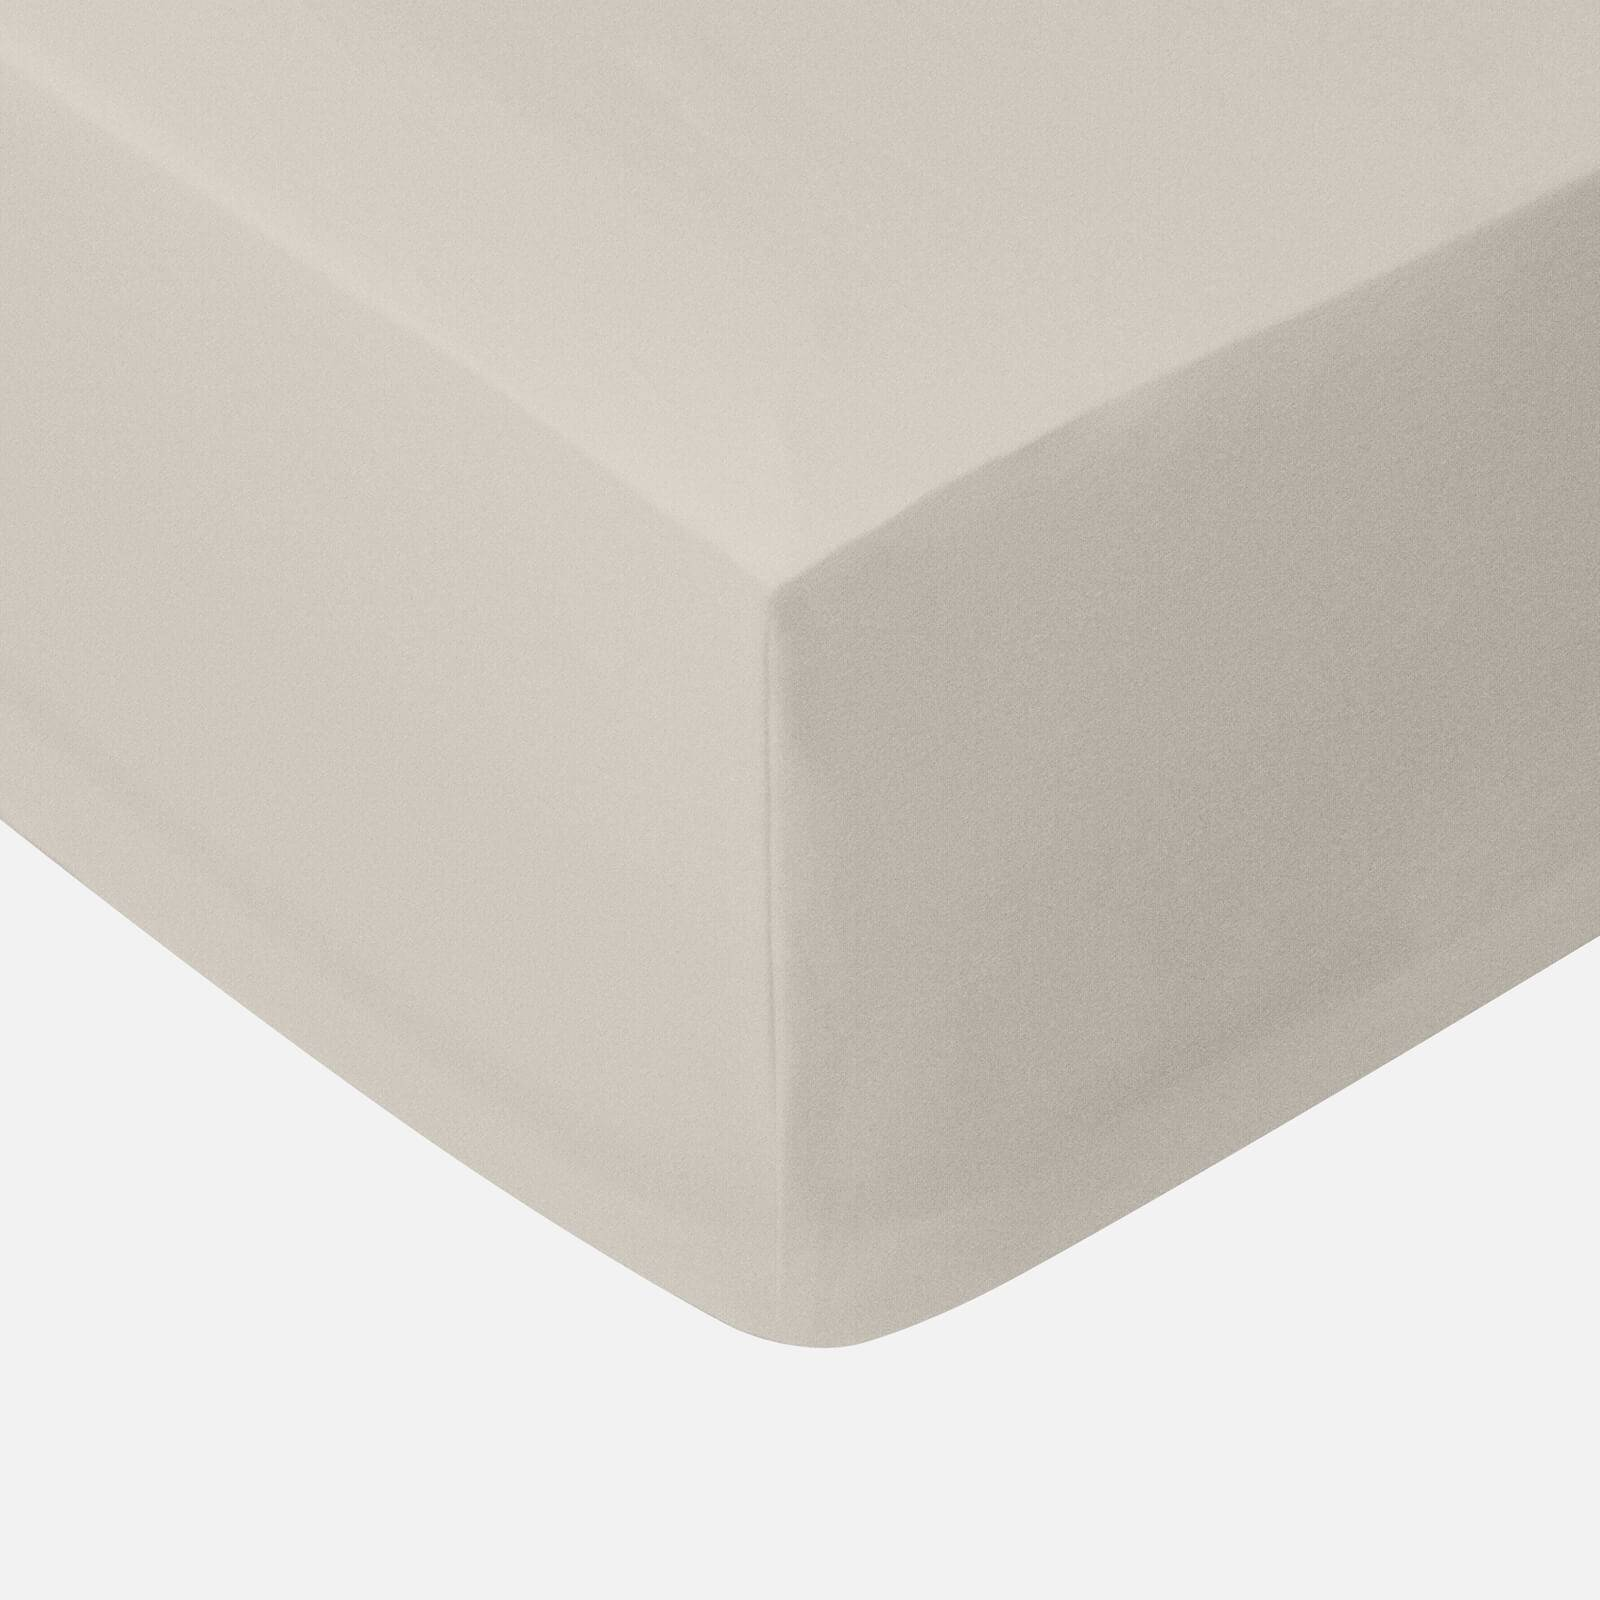 in homeware 200 Thread Count 100% Cotton Fitted Sheet - Natural - Double - Nude